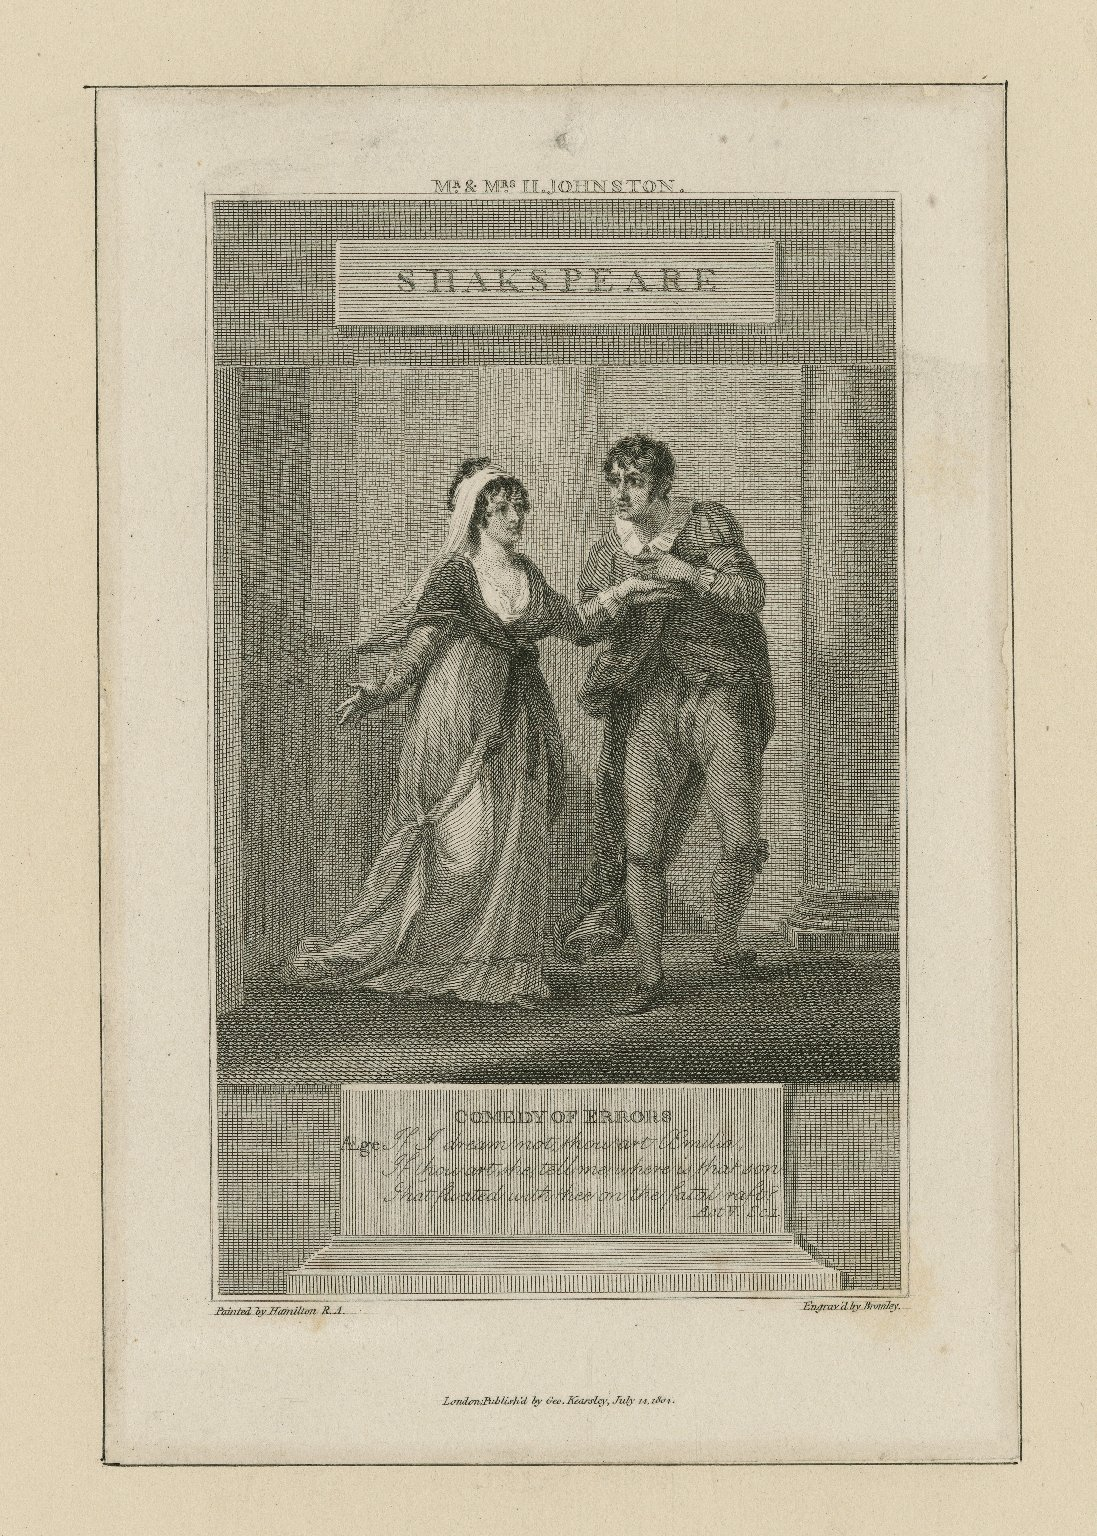 Comedy of errors ... act V, scene 1, Mr. & Mrs. Johnston [as Ægeon and Æmilia] [graphic] / painted by Hamilton, R.A. ; engrav'd by Bromley.